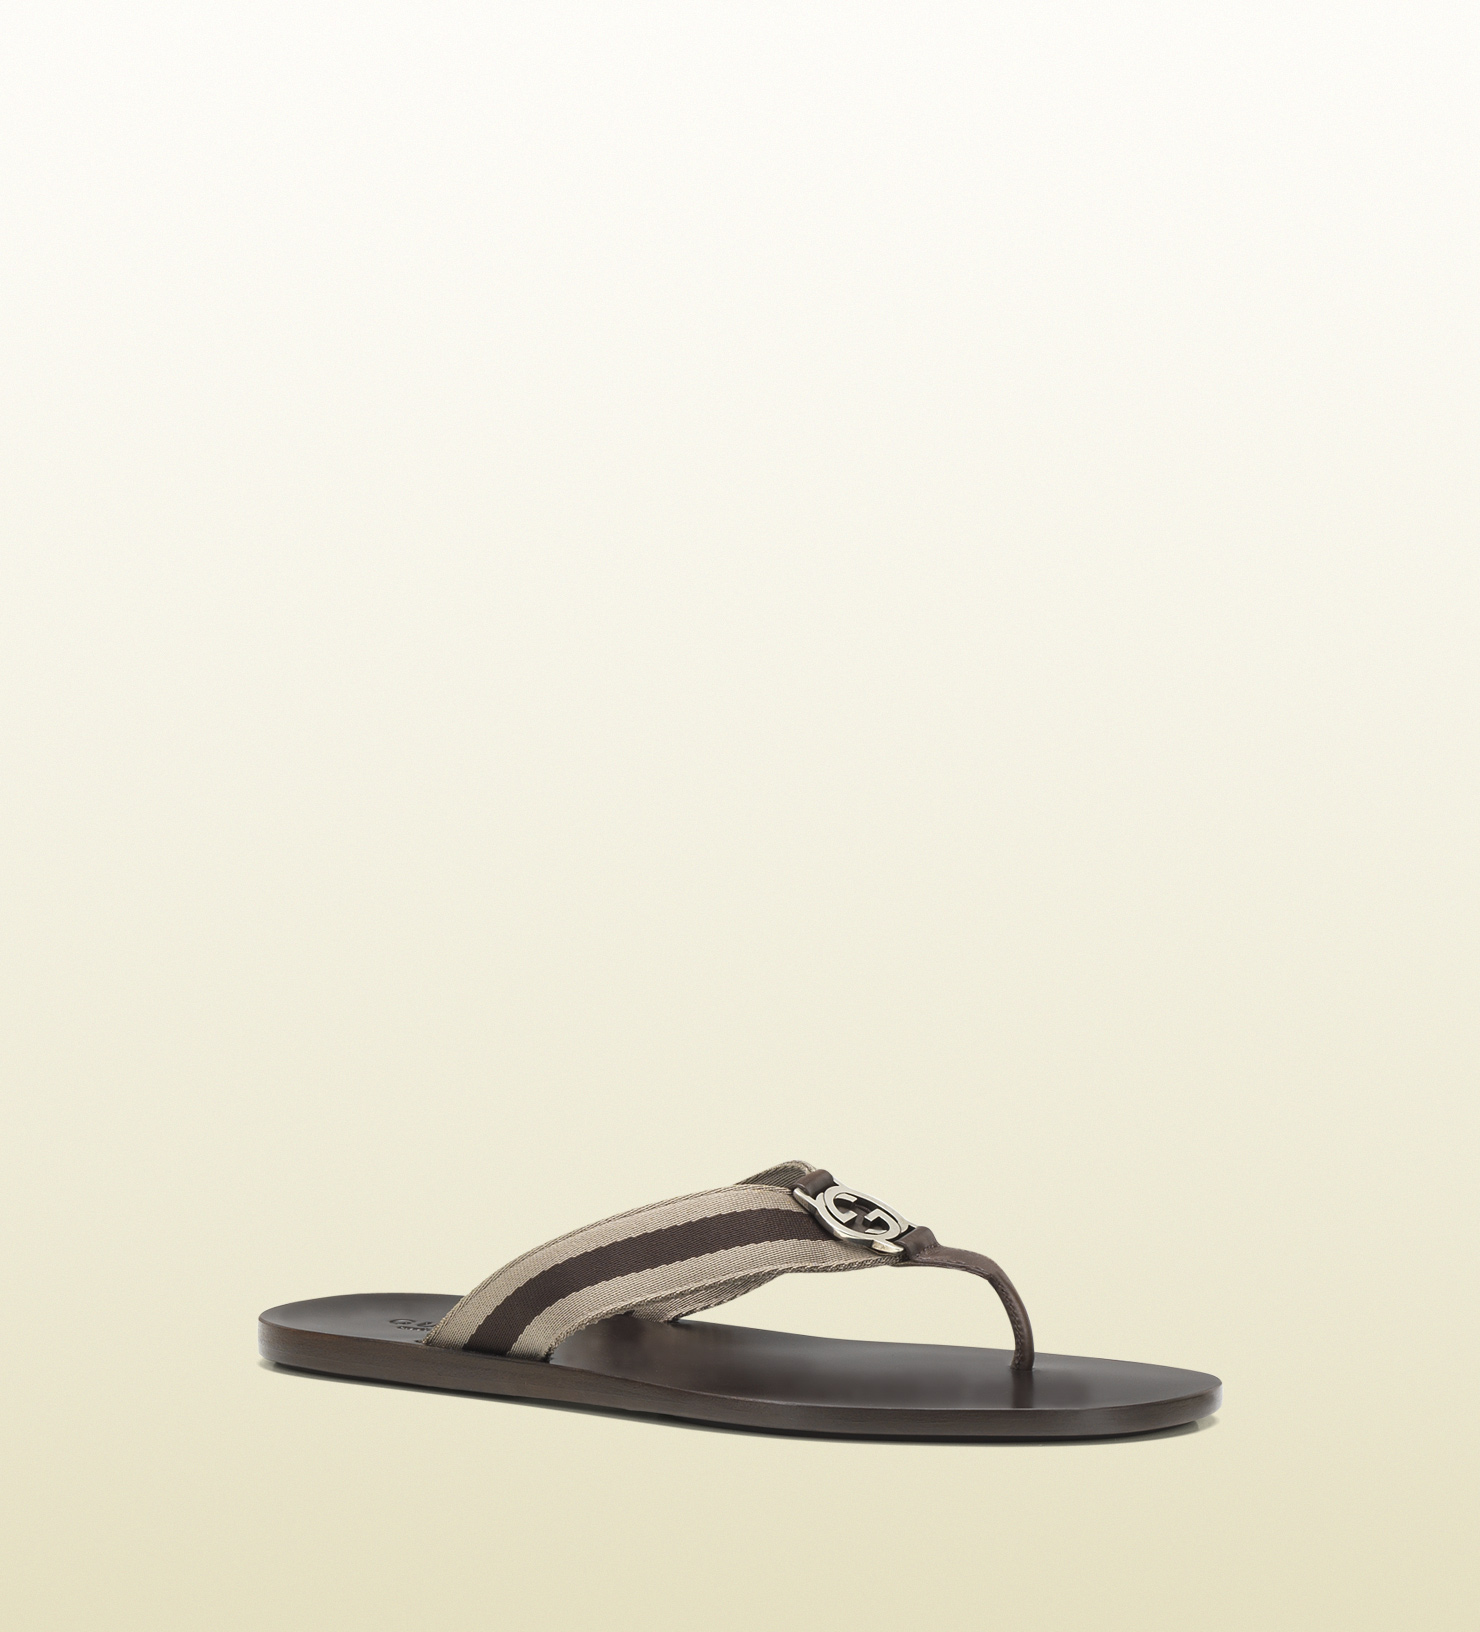 36b91ef394c Lyst - Gucci Nylon Web Thong Sandal in Natural for Men